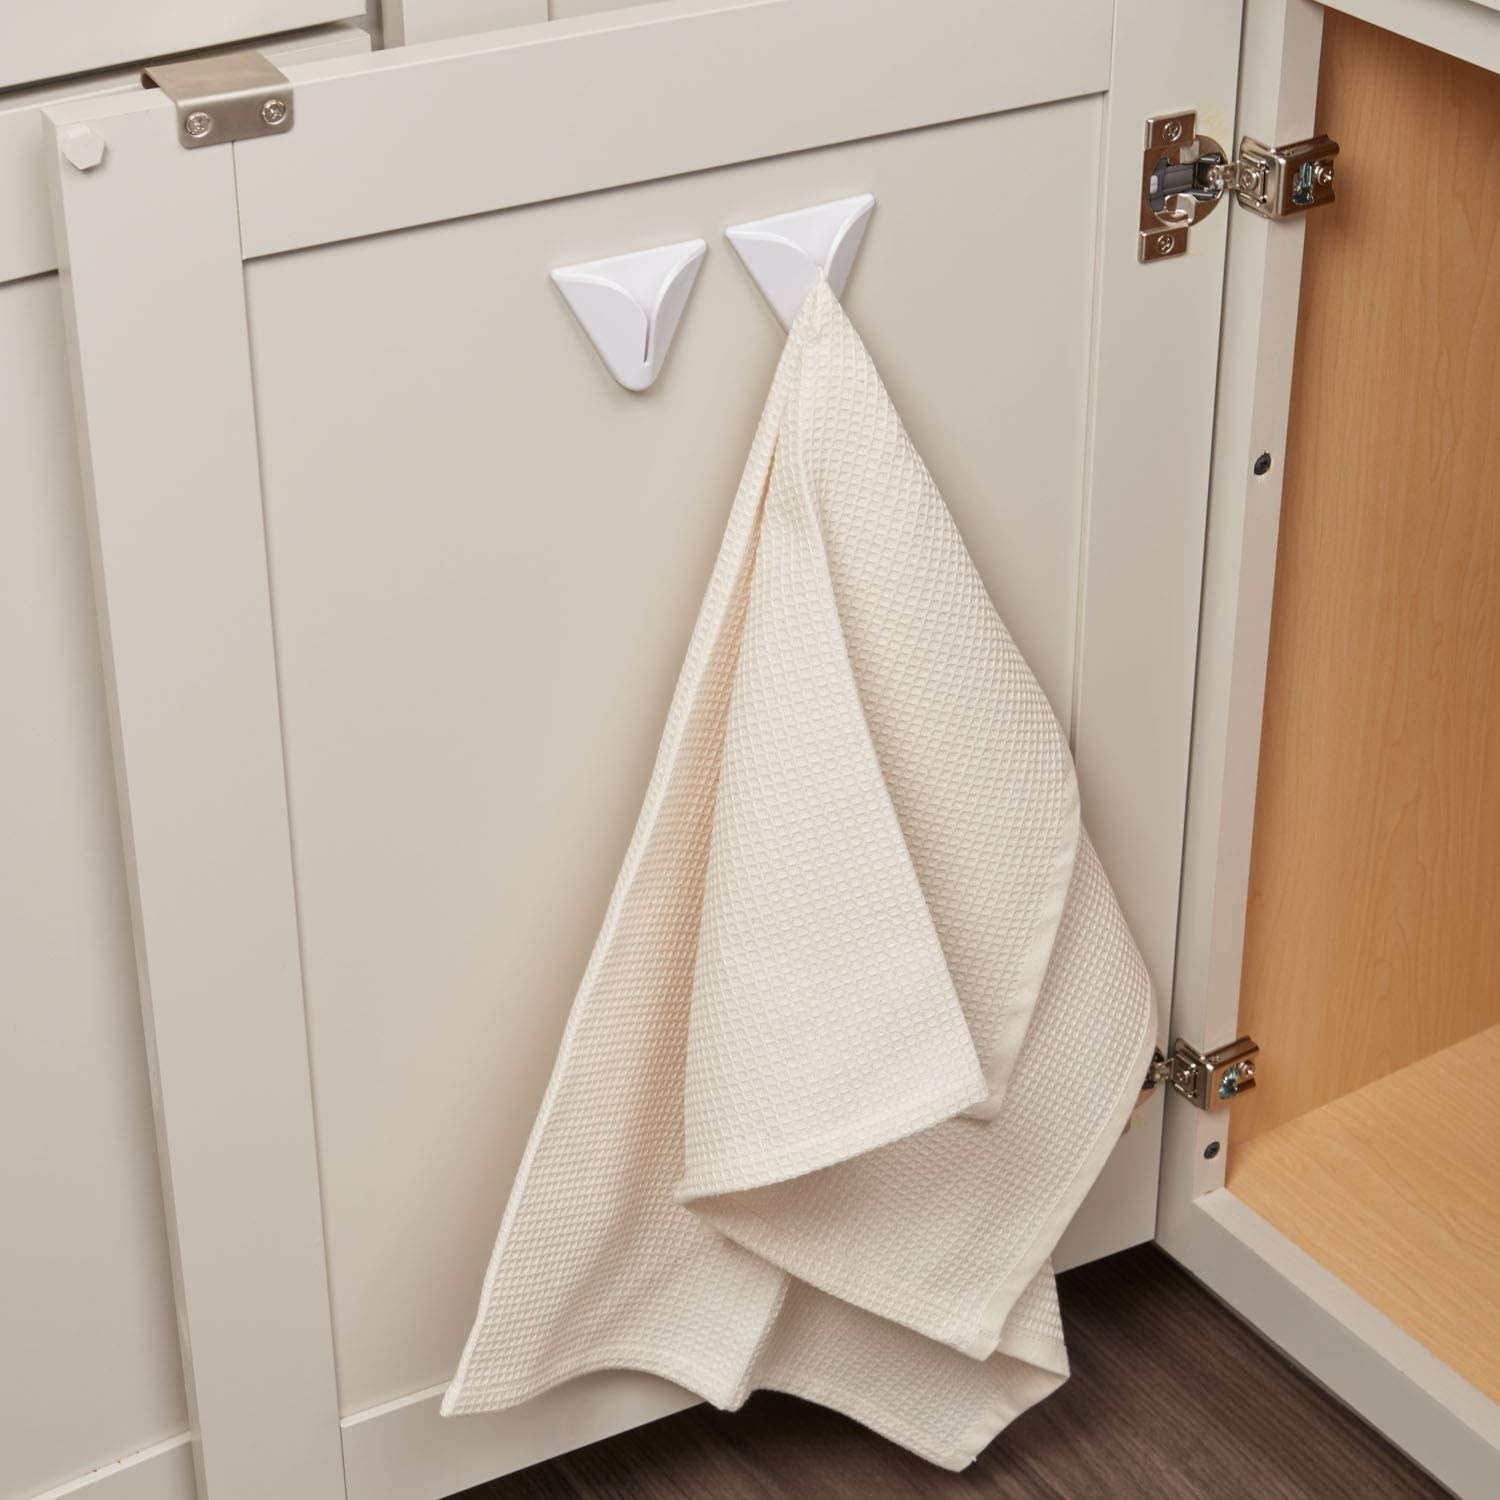 An open cabinet door with the two hooks installed on the inside and holding tea towels